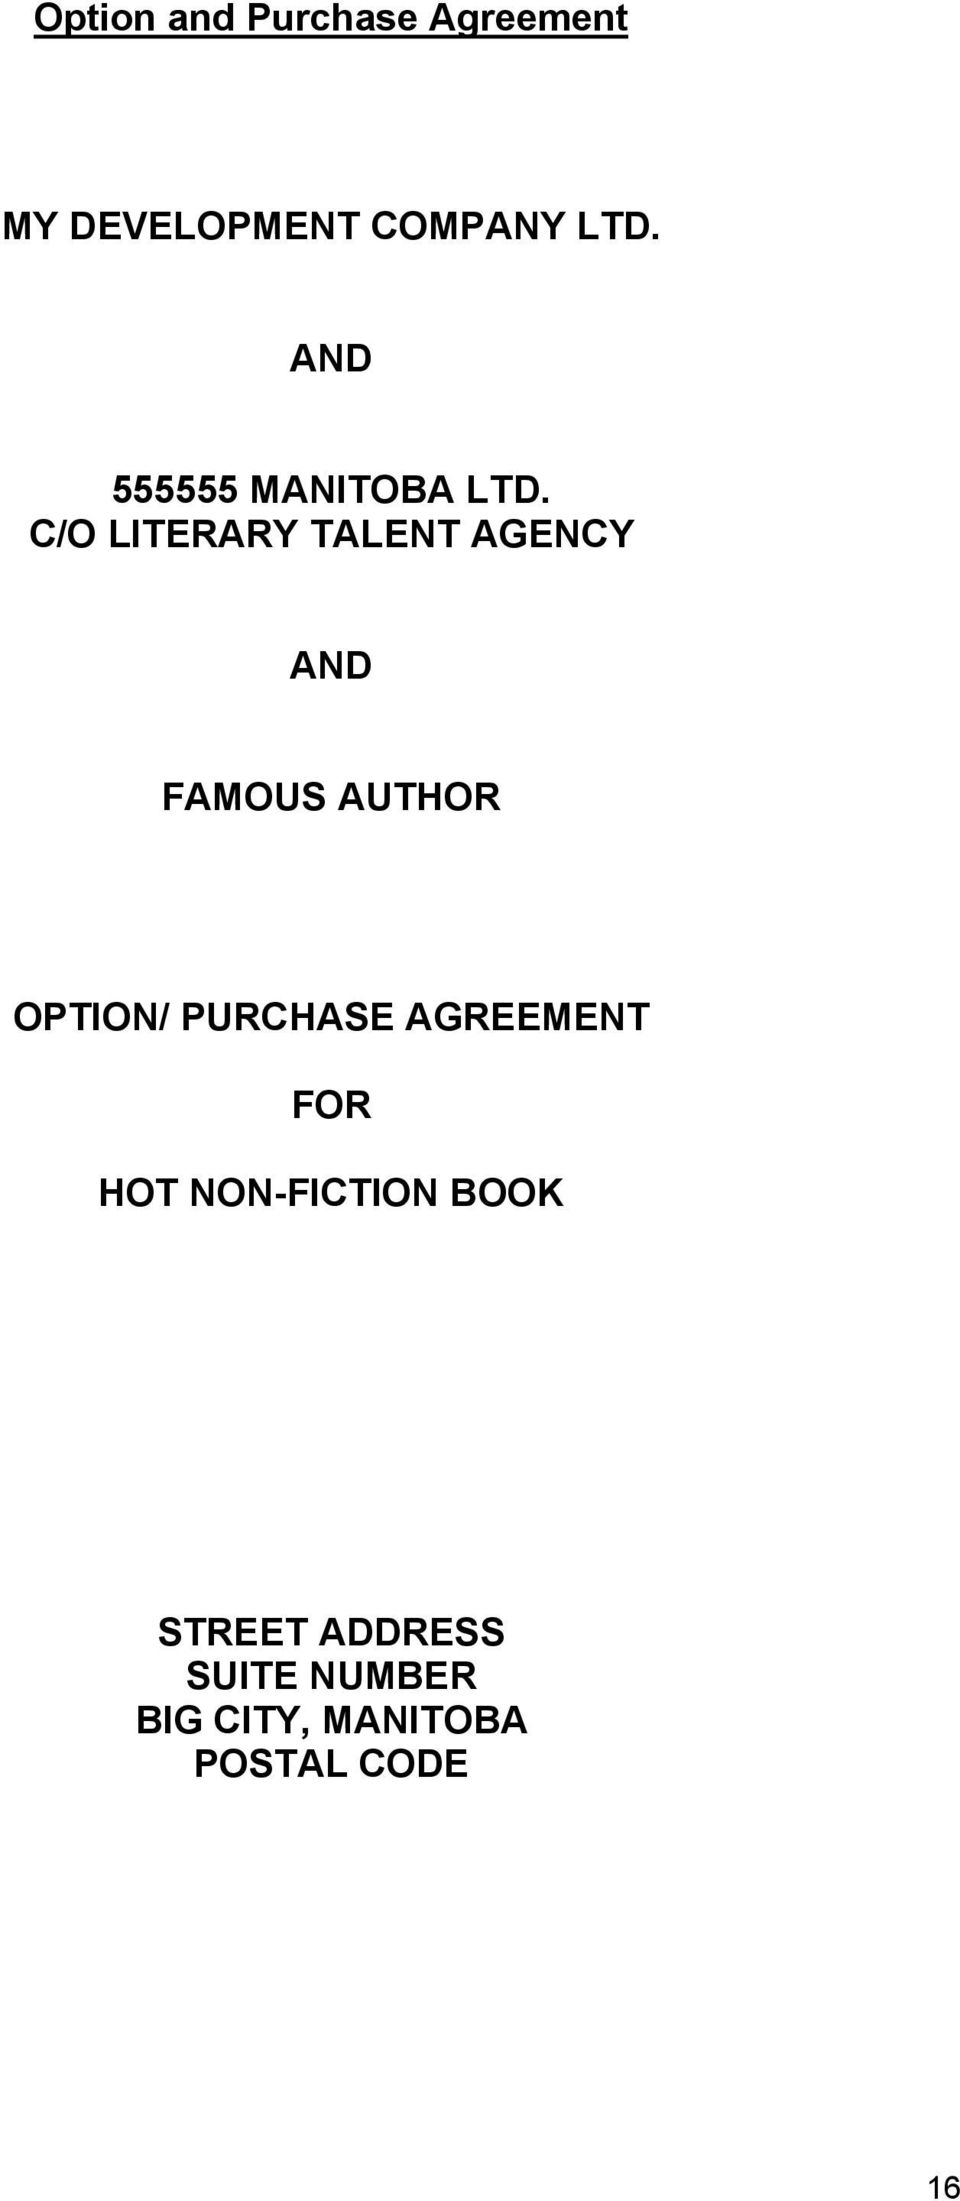 C/O LITERARY TALENT AGENCY AND FAMOUS AUTHOR OPTION/